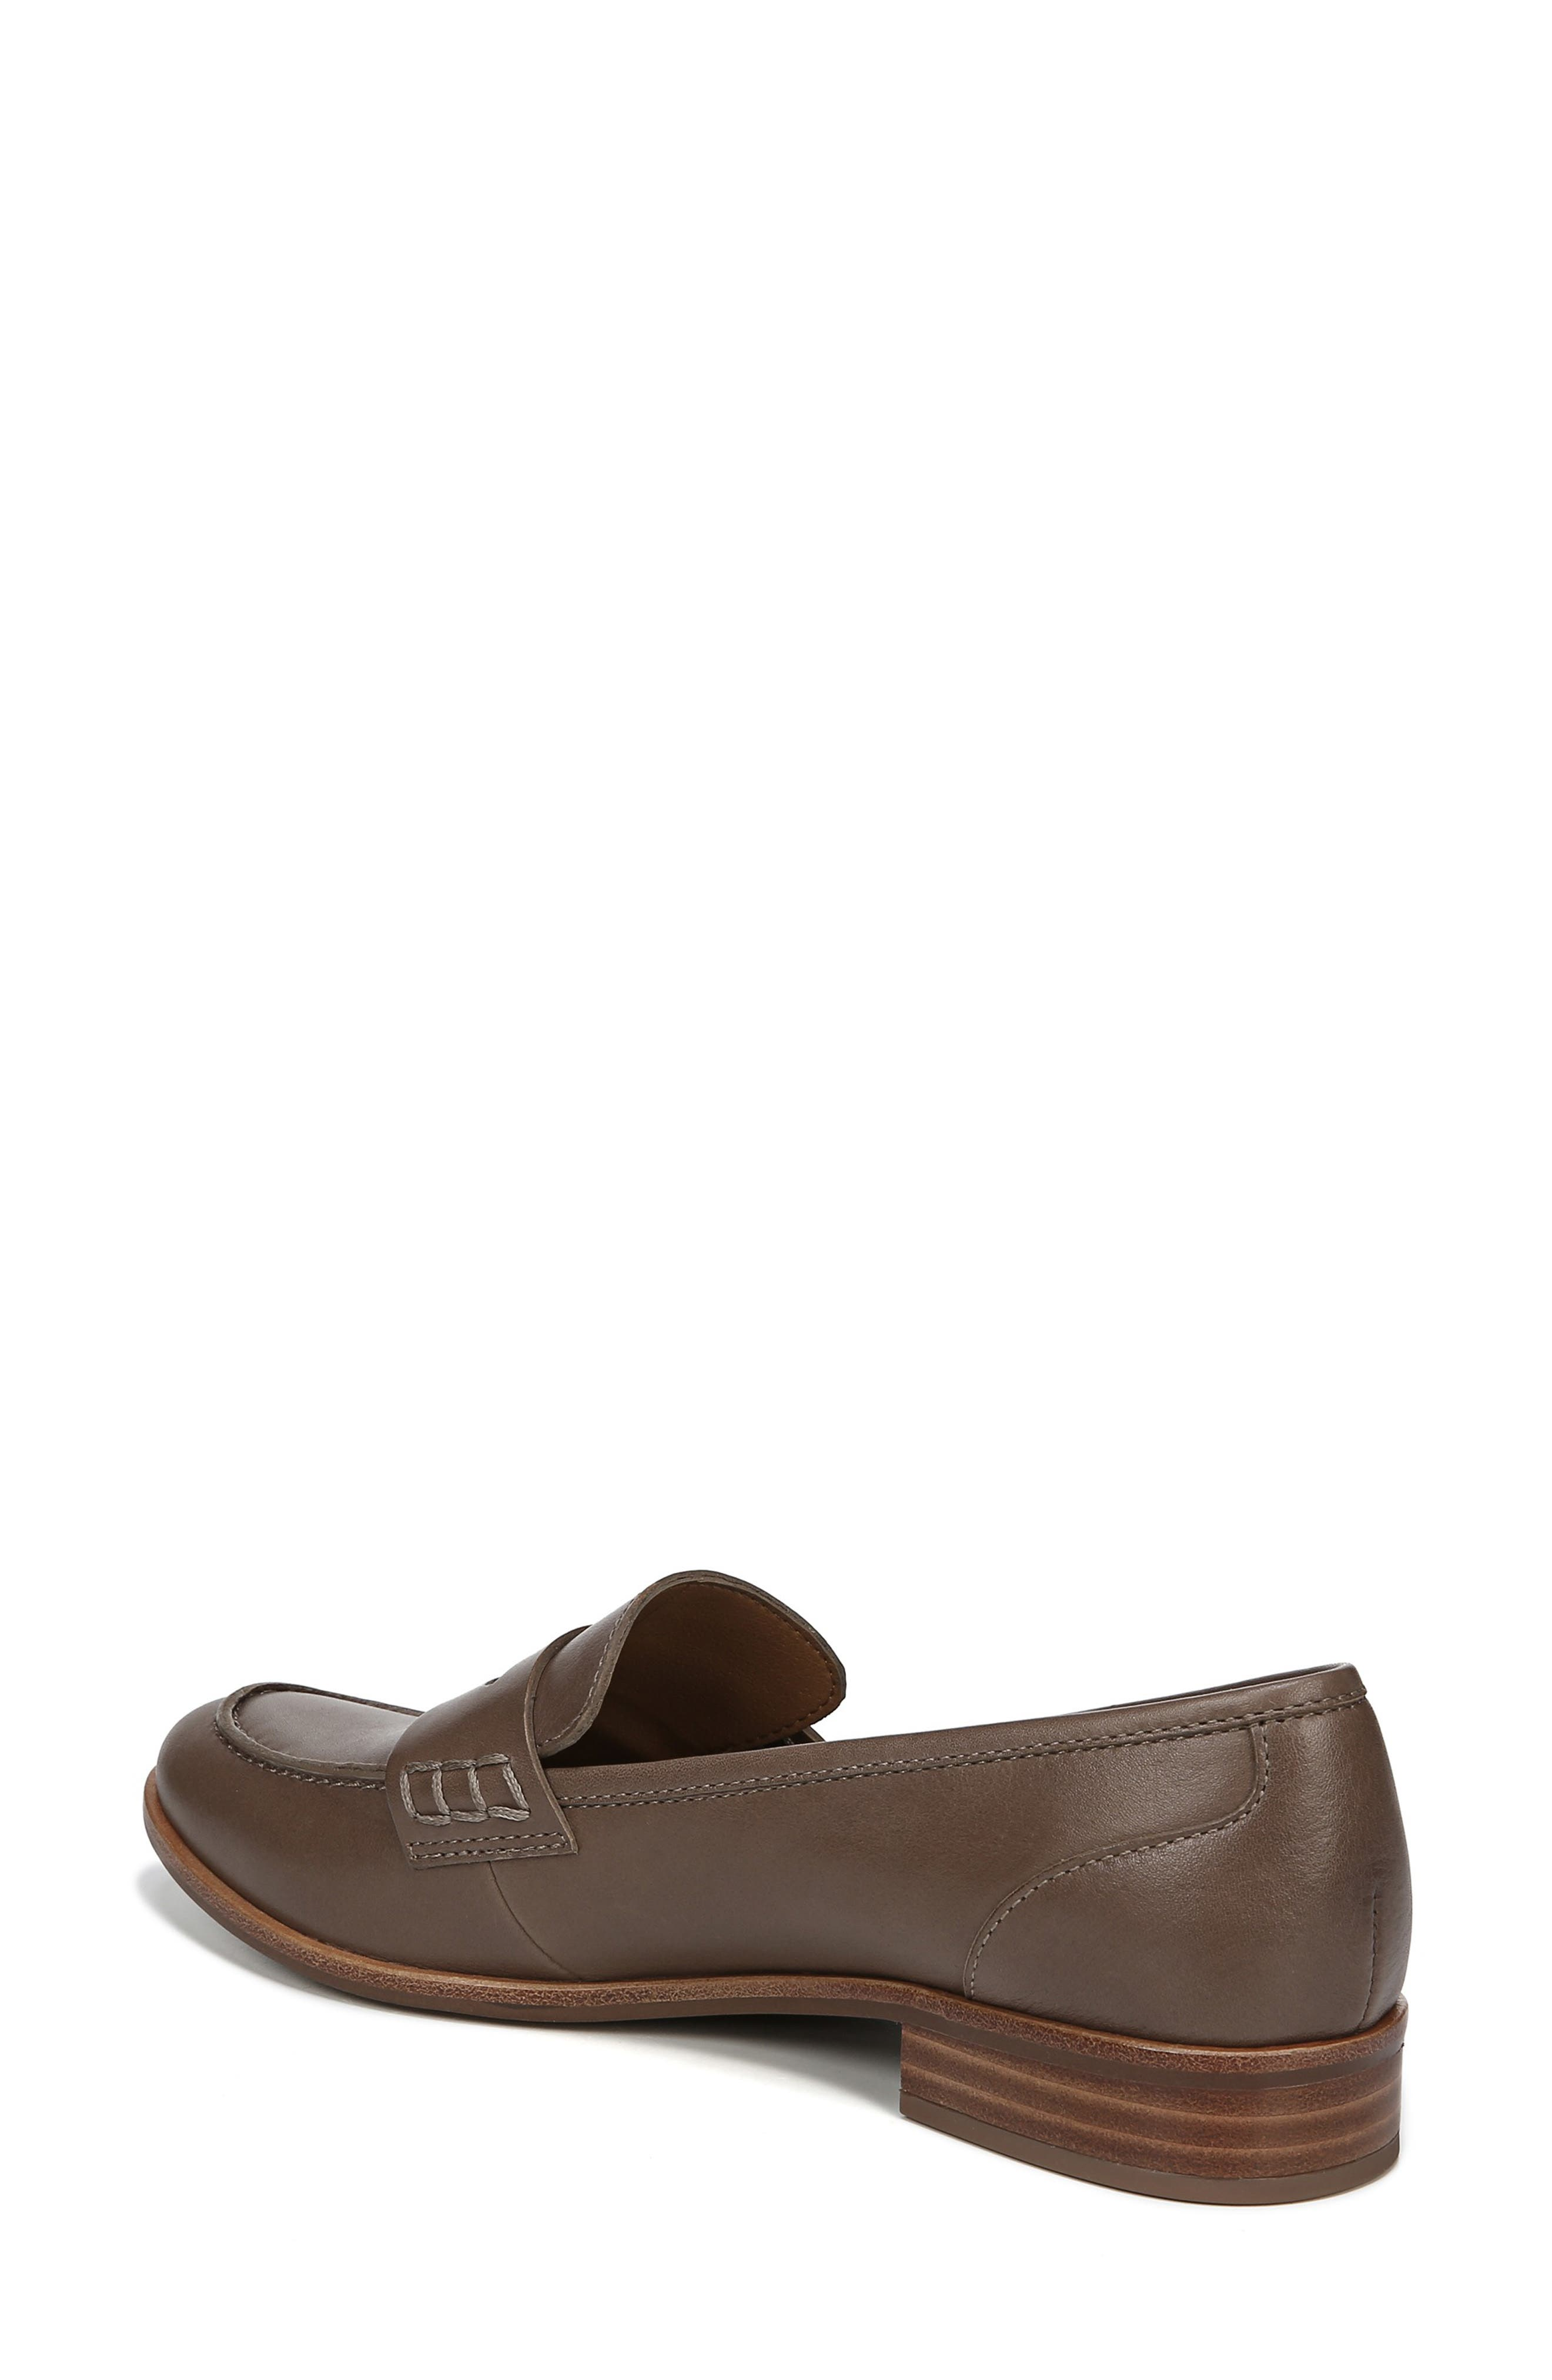 SARTO BY FRANCO SARTO,                             'Jolette' Penny Loafer,                             Alternate thumbnail 2, color,                             DARK PUTTY LEATHER